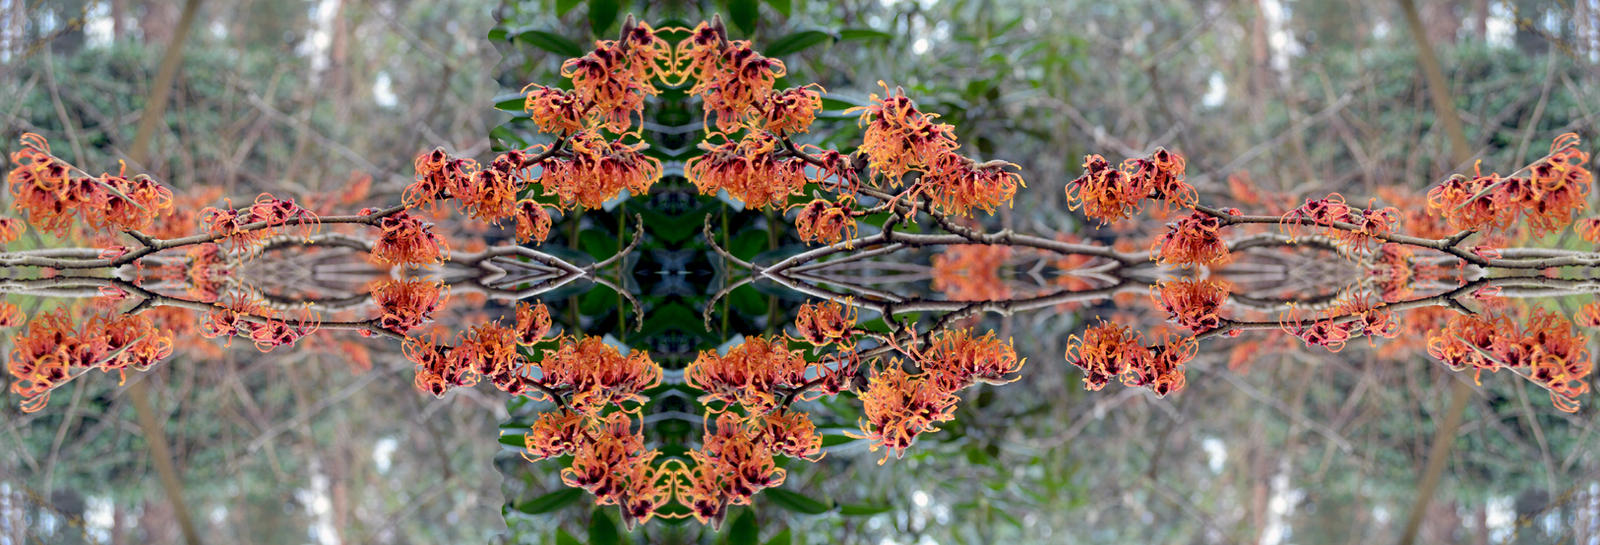 The Reflected Manipulated Witch Hazel Stock by aegiandyad